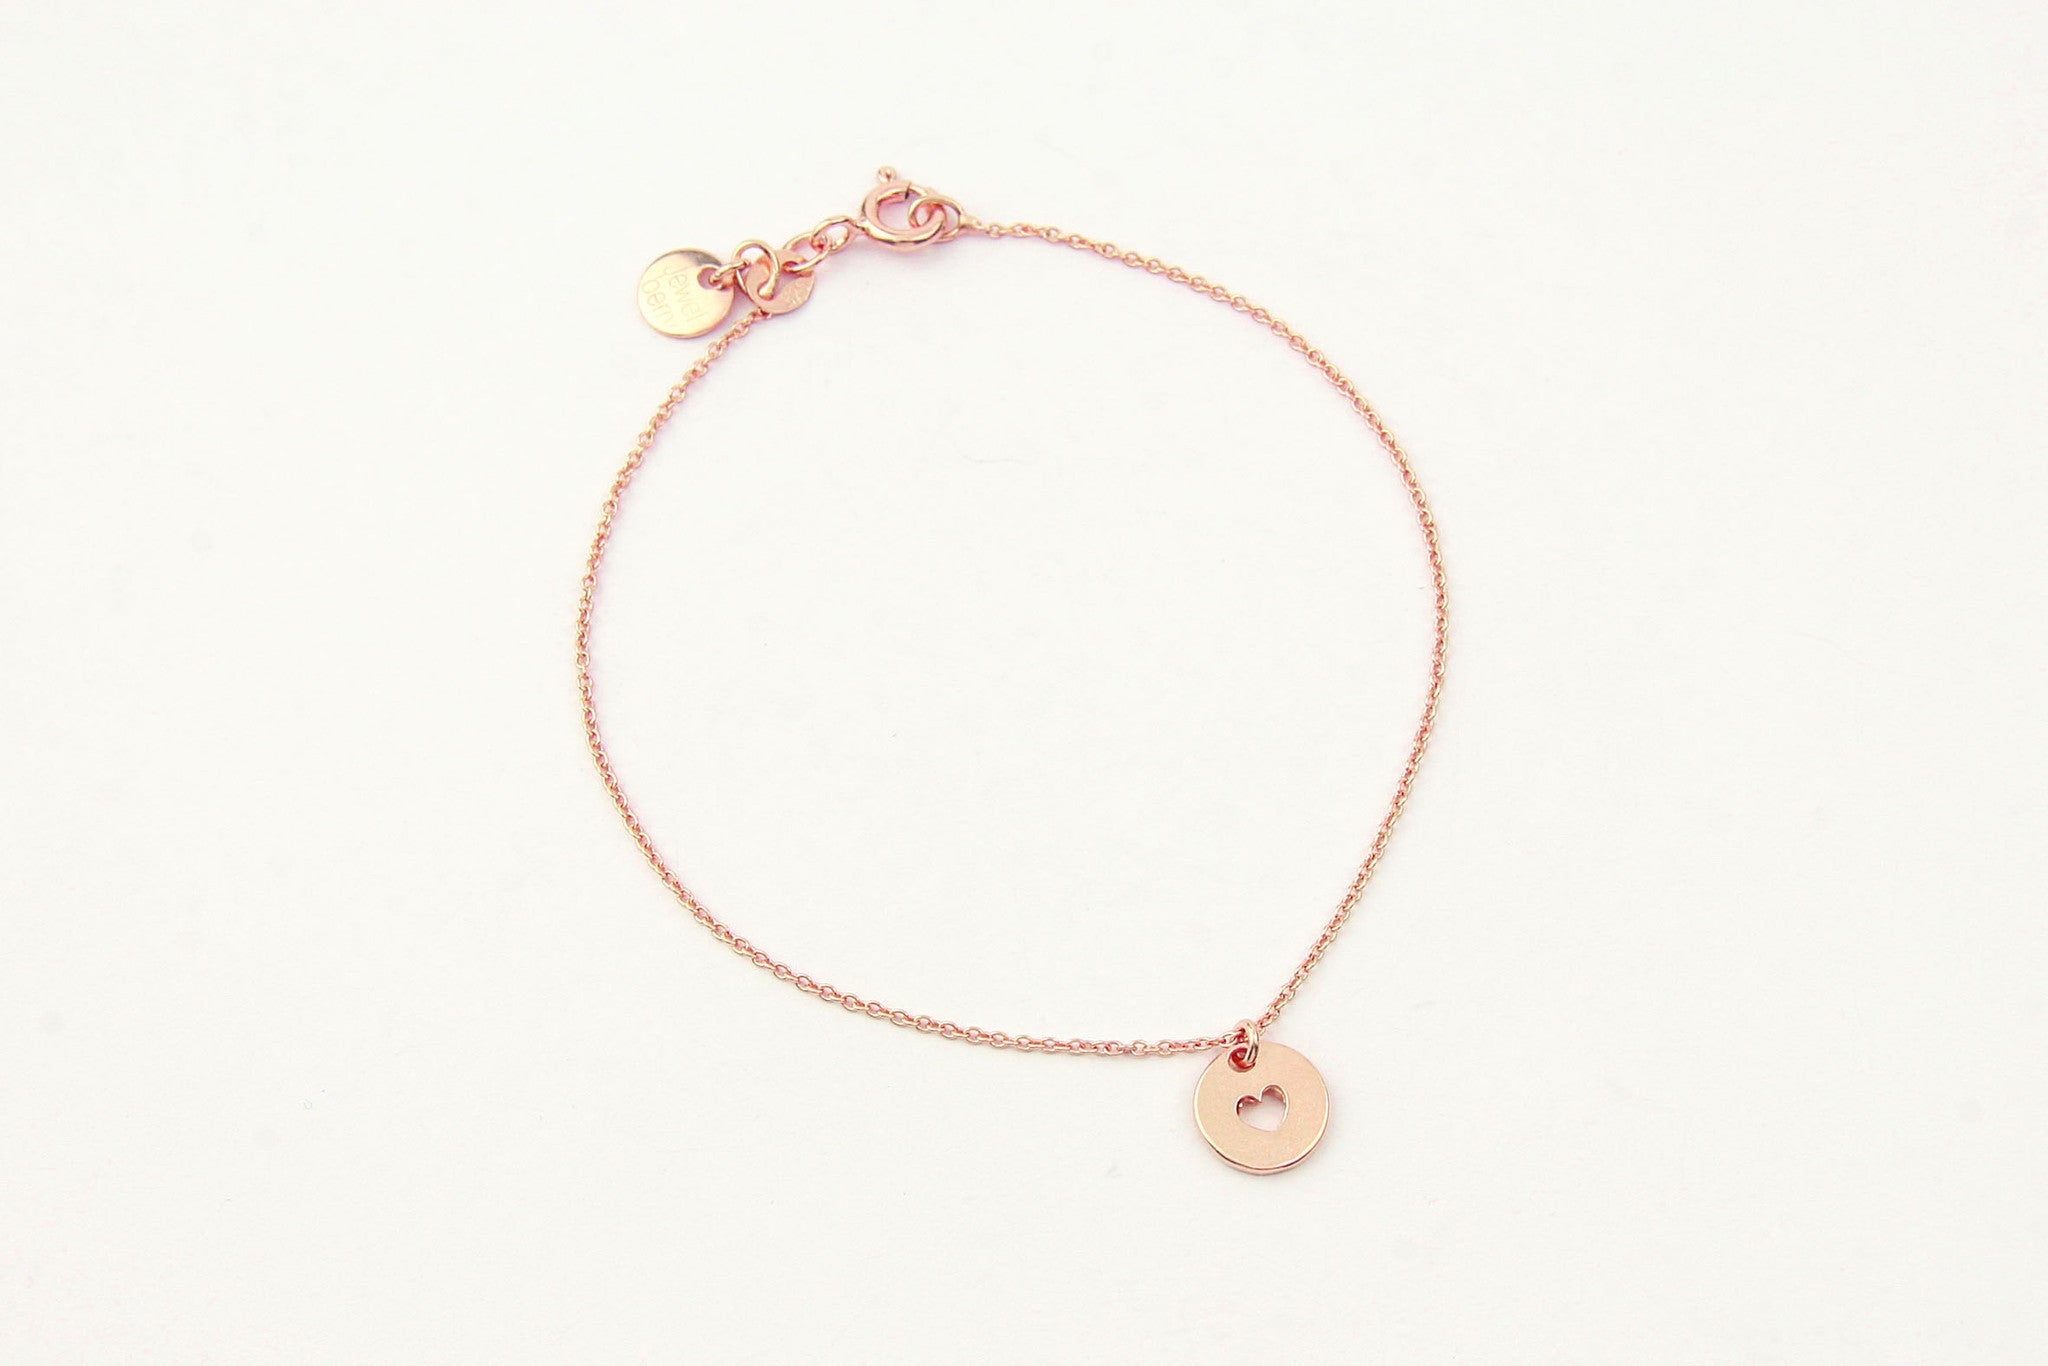 jewelberry armband bracelet love token rose gold plated sterling silver fine jewelry handmade with love fairtrade anchor chain